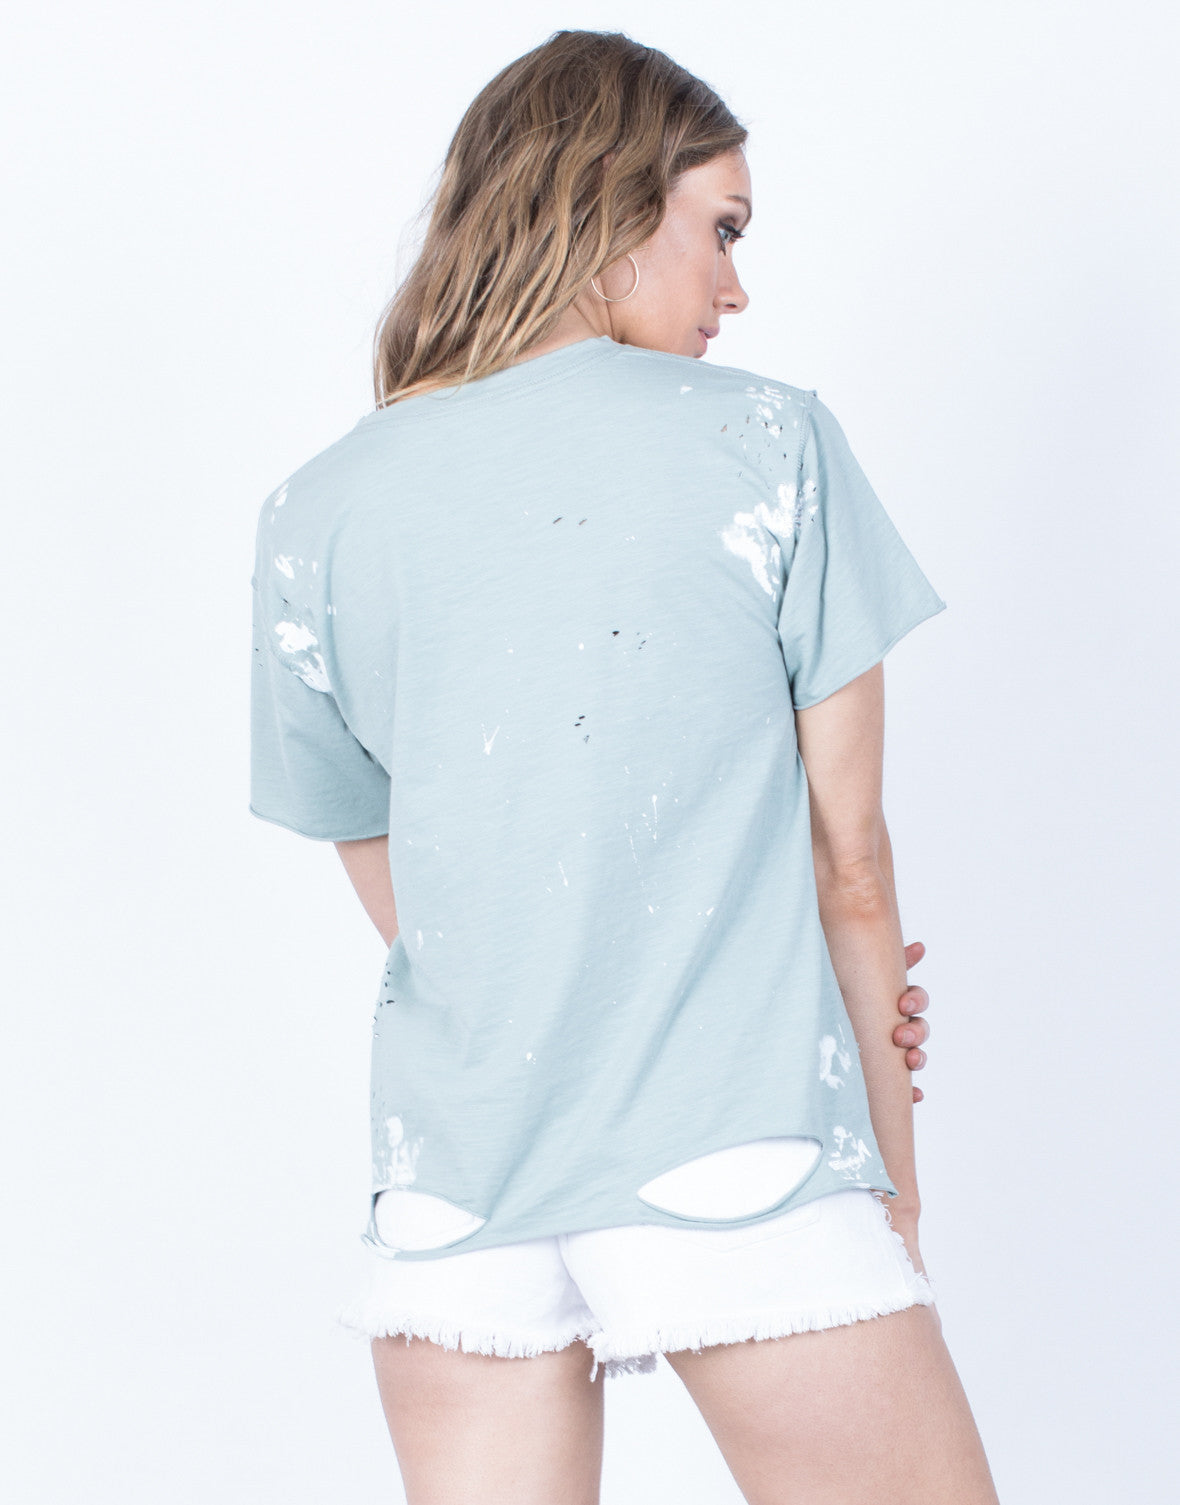 Back View of Soaked in Paint Tee